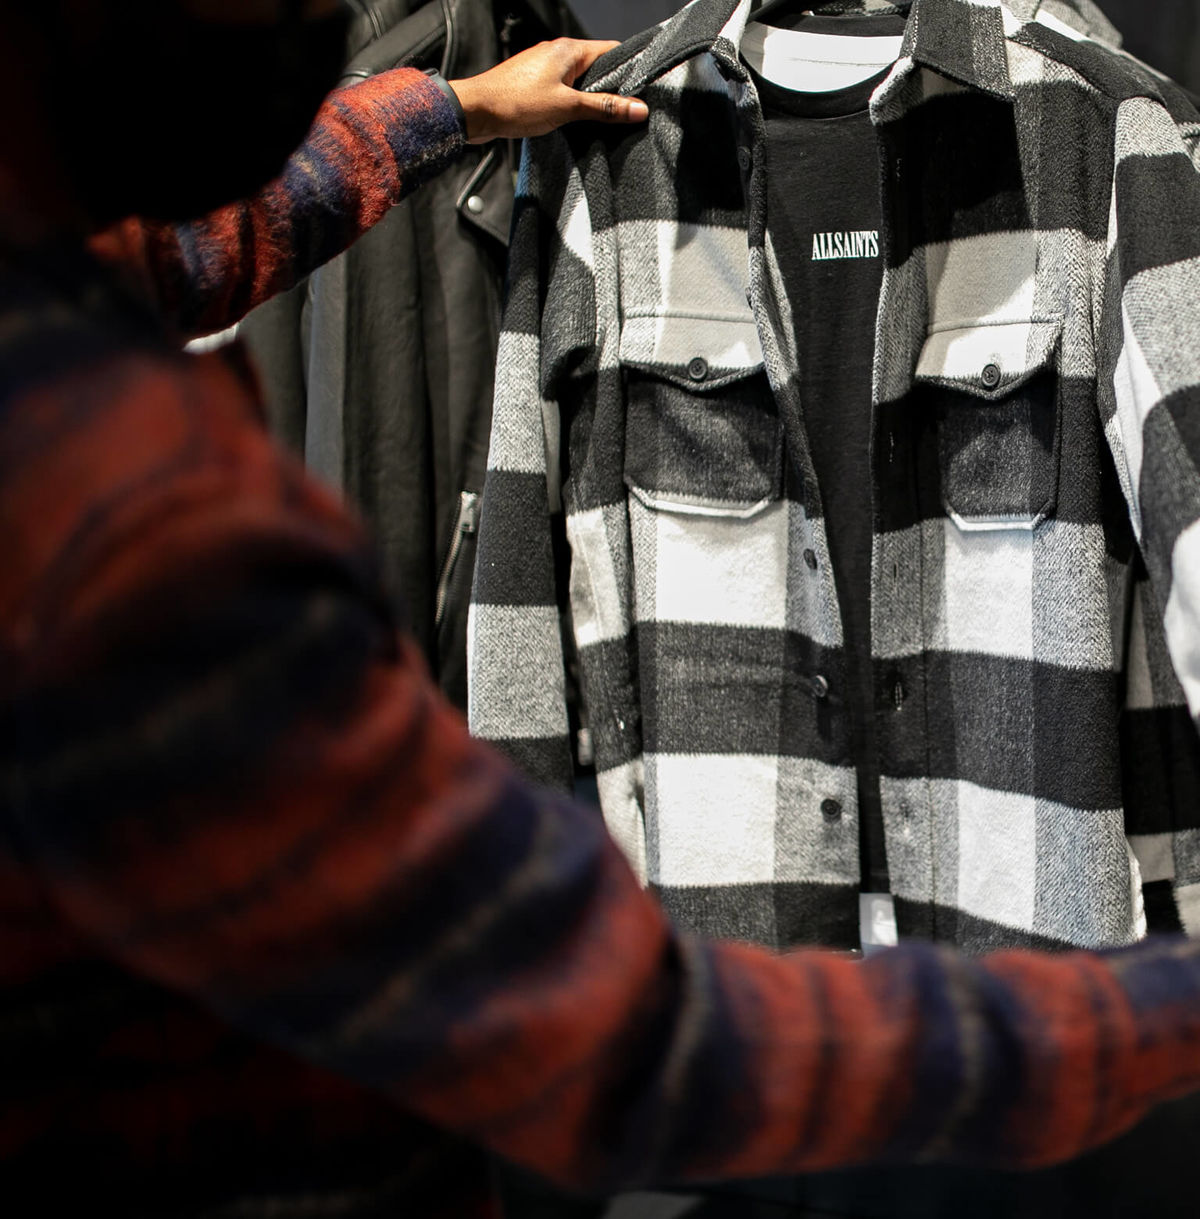 A member of our teams is holding a black and white checked shirt mechandised with a black t-shirt.